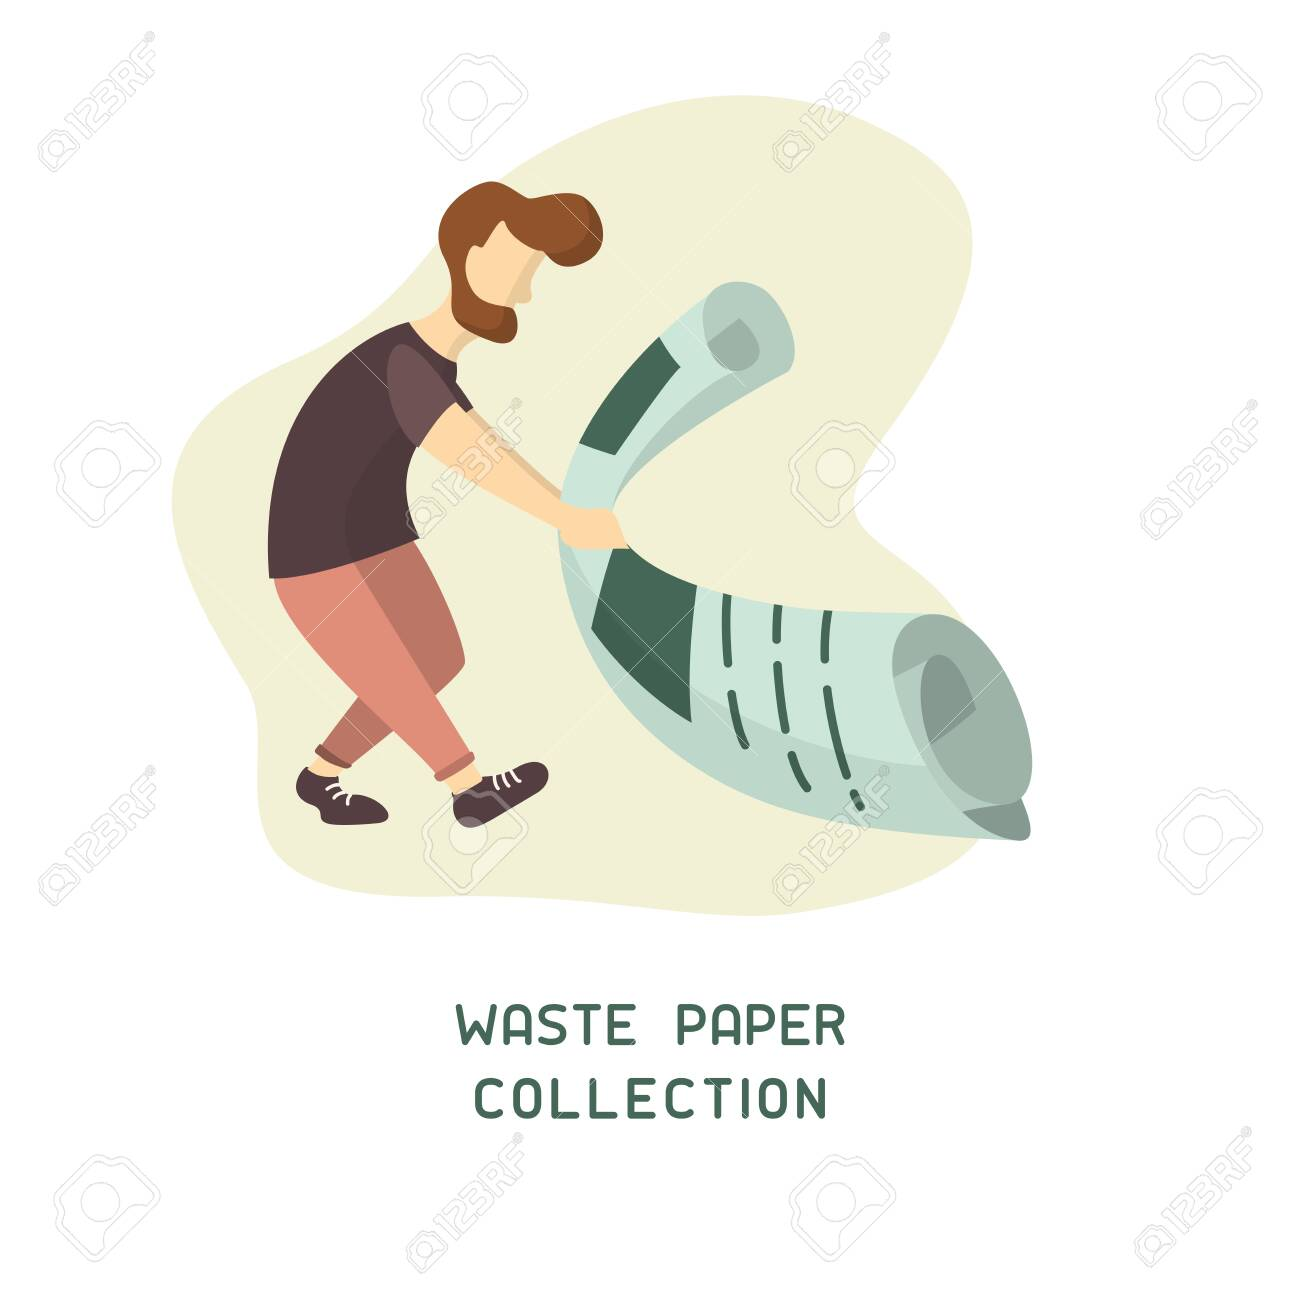 Waste paper collection placard concept with man collects trash. Flat style vector illustration - 129013216